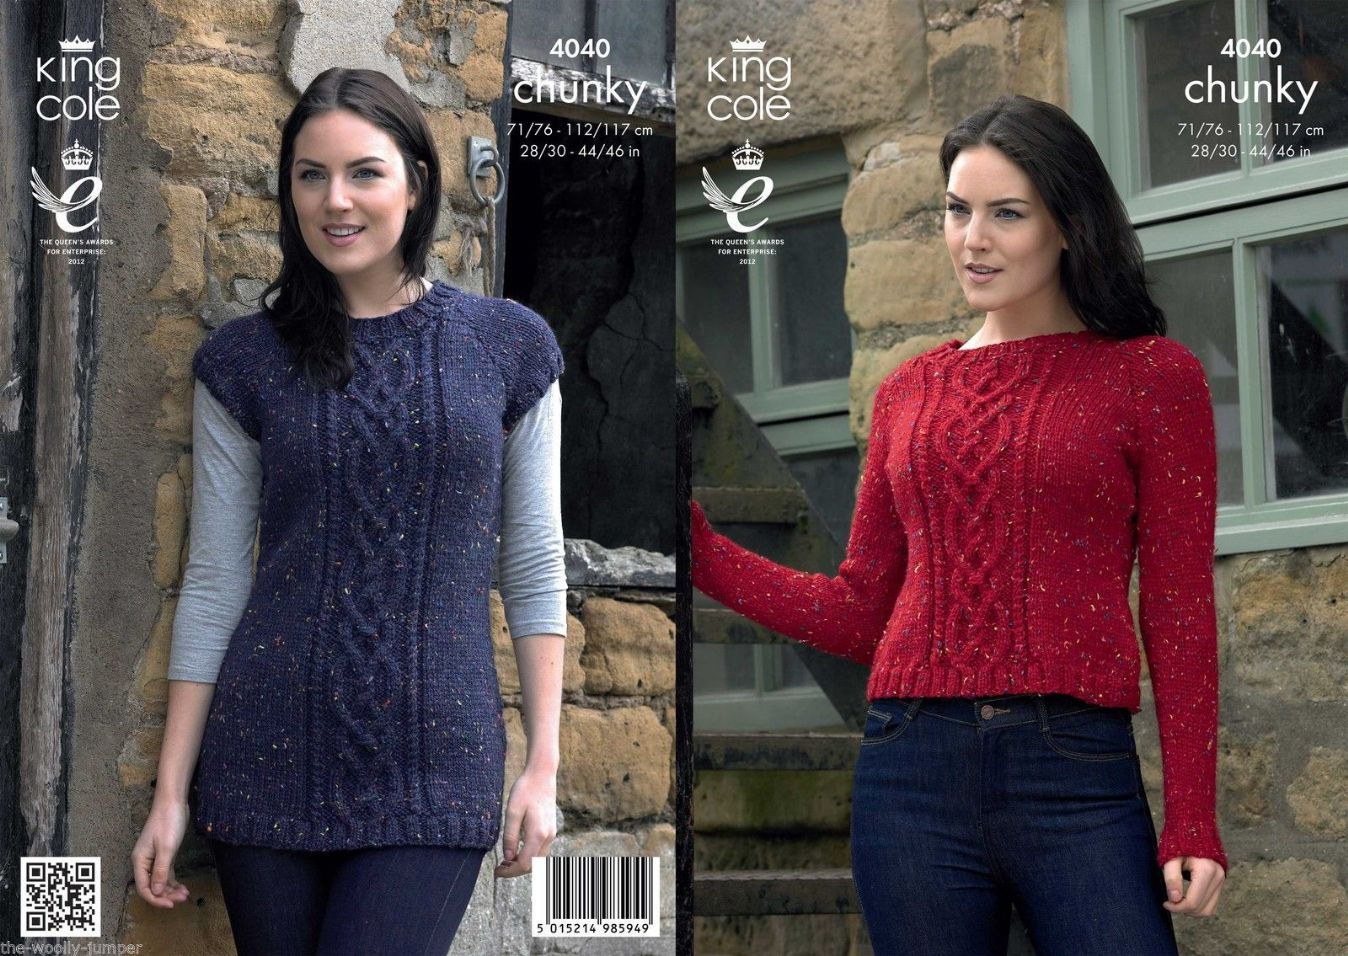 ad9964535 4040 - KING COLE CHUNKY TWEED SWEATER KNITTING PATTERN - TO FIT CHEST 28 TO  46